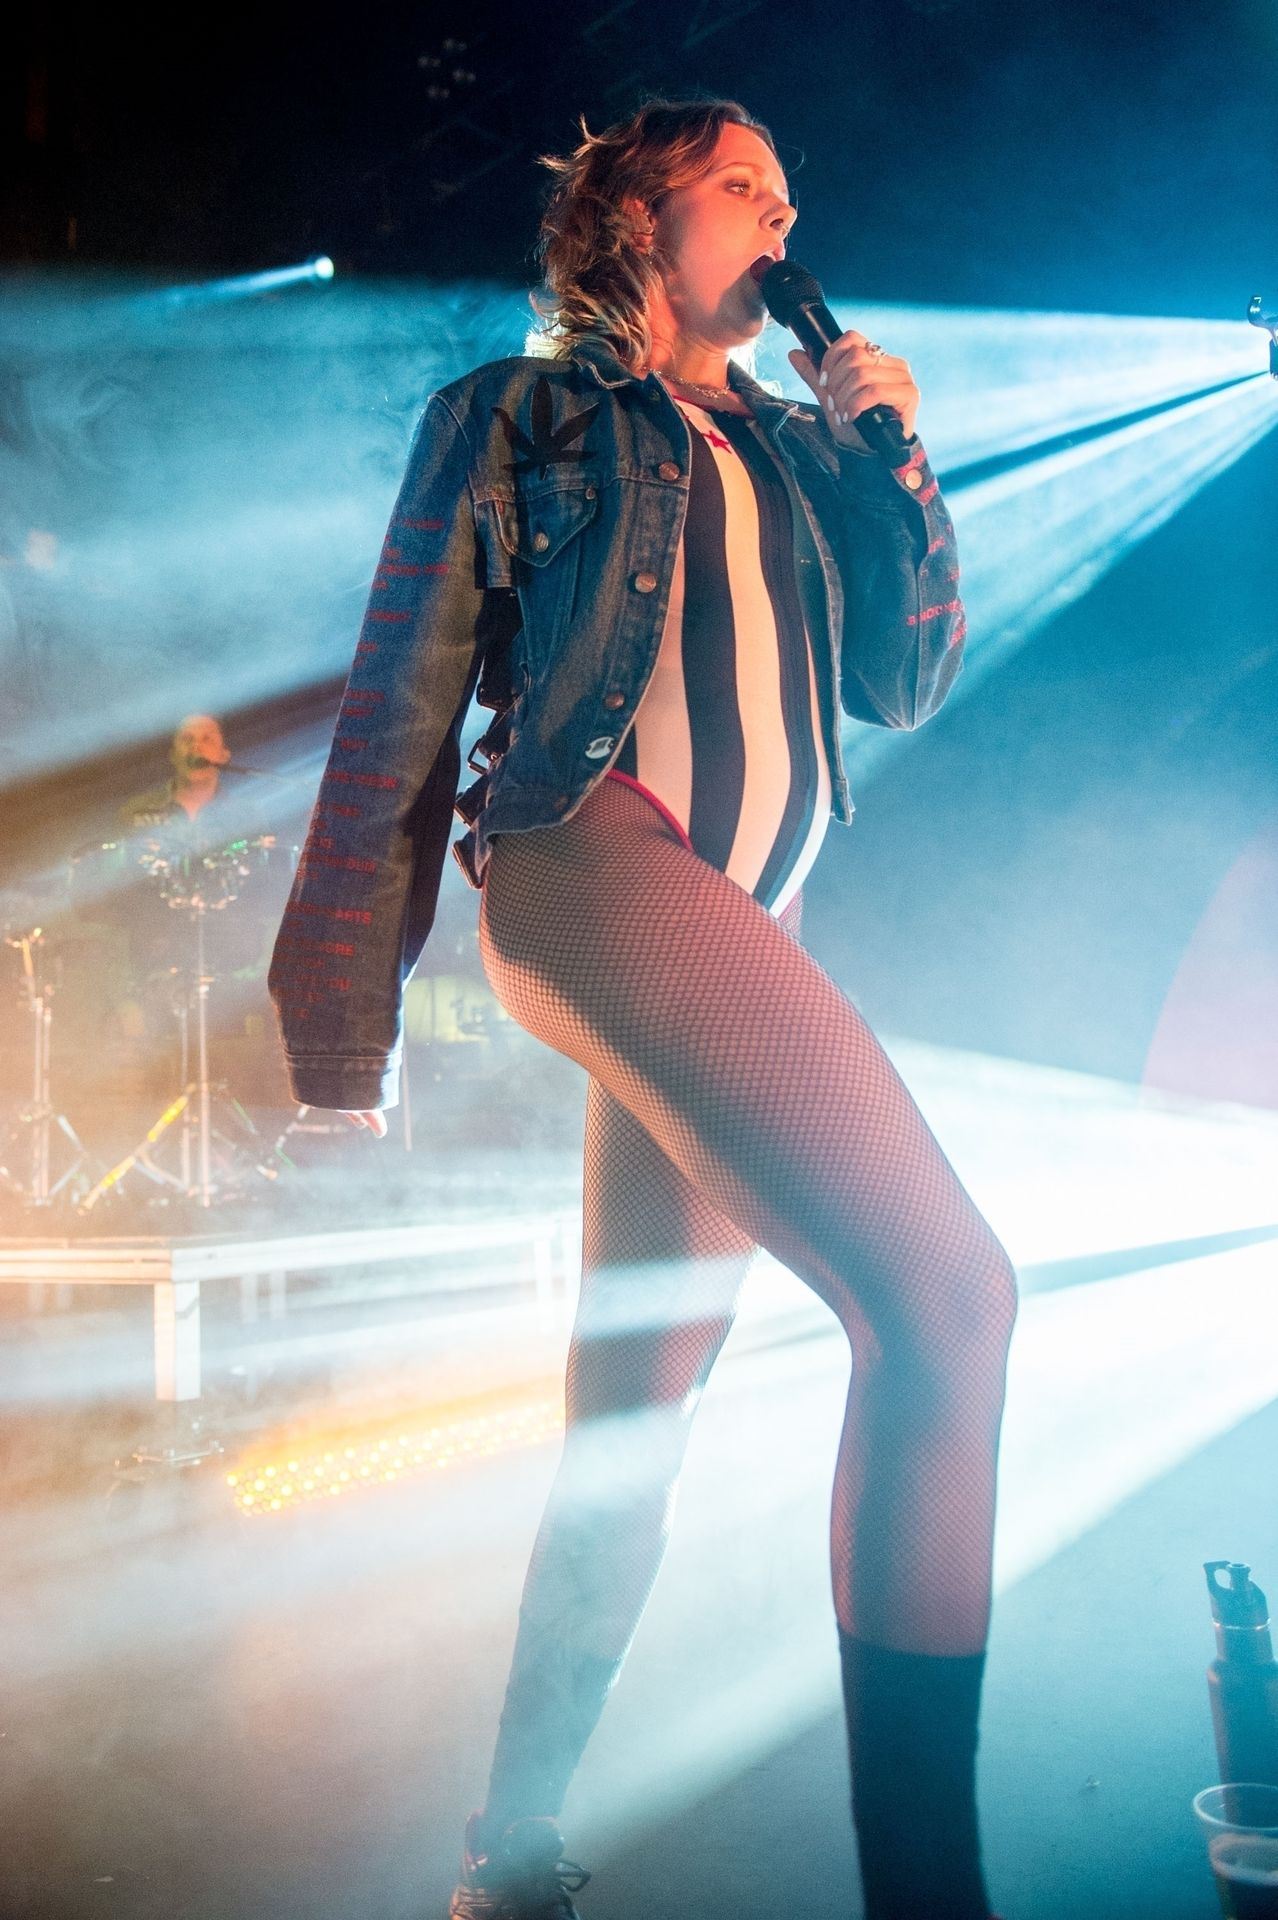 Tove Lo Is In Concert Performing Live At O2 Forum Kentish Town In London 0064